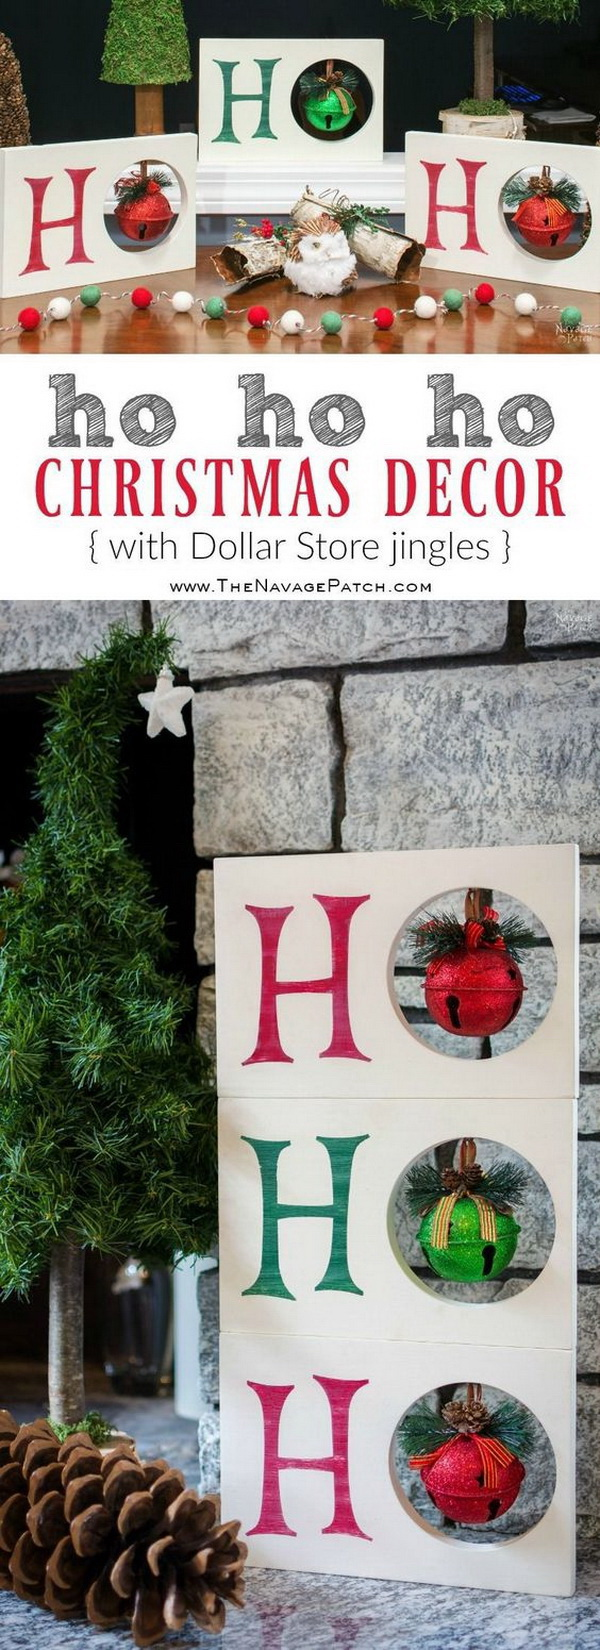 DIY HO HO HO Christmas Decor. This HO HO HO Christmas decor will look fantastic with your holiday décor!